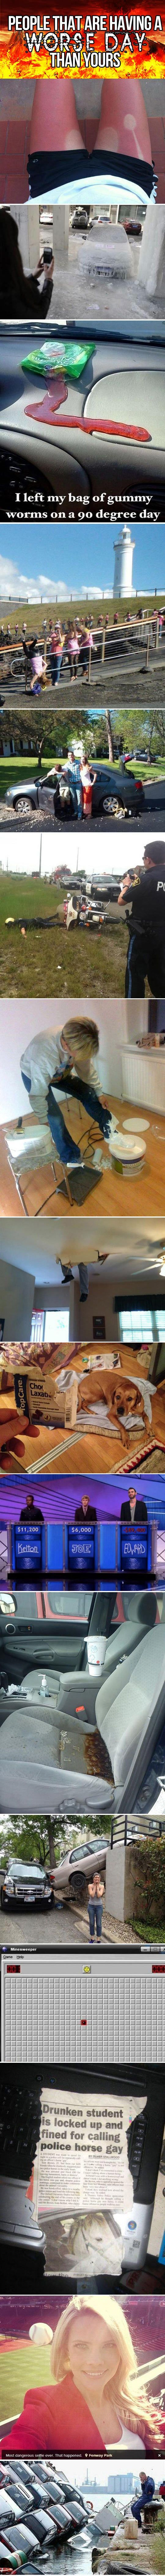 Pictures of the week, 64 pics. People That Are Having Worse Day Than Yours (Compilation)